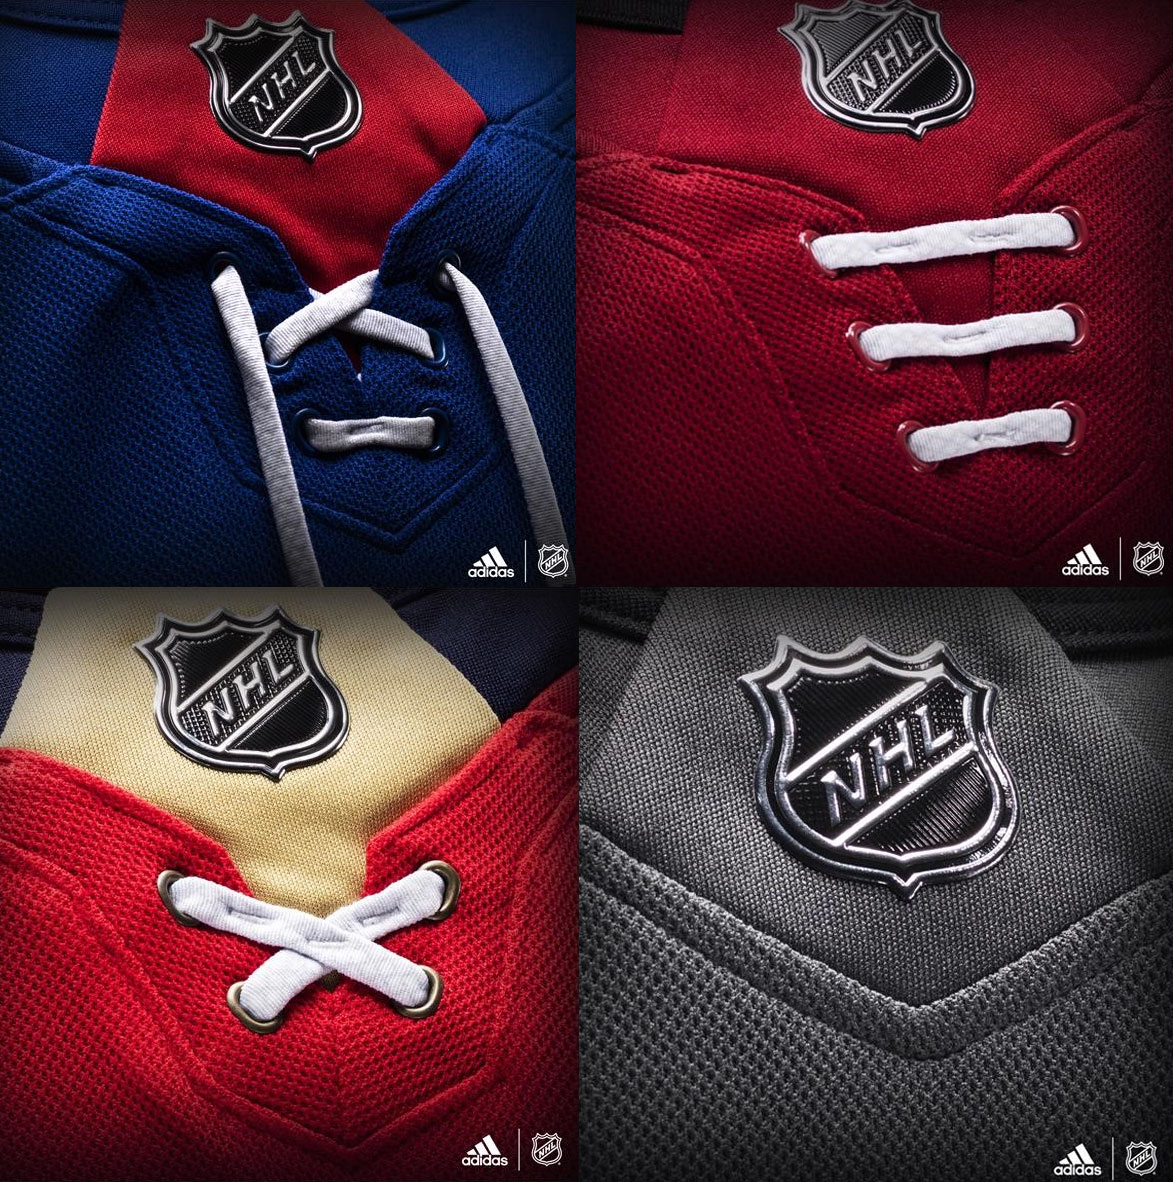 Adidas Unveils A New Look for the NHL  54173c242ec